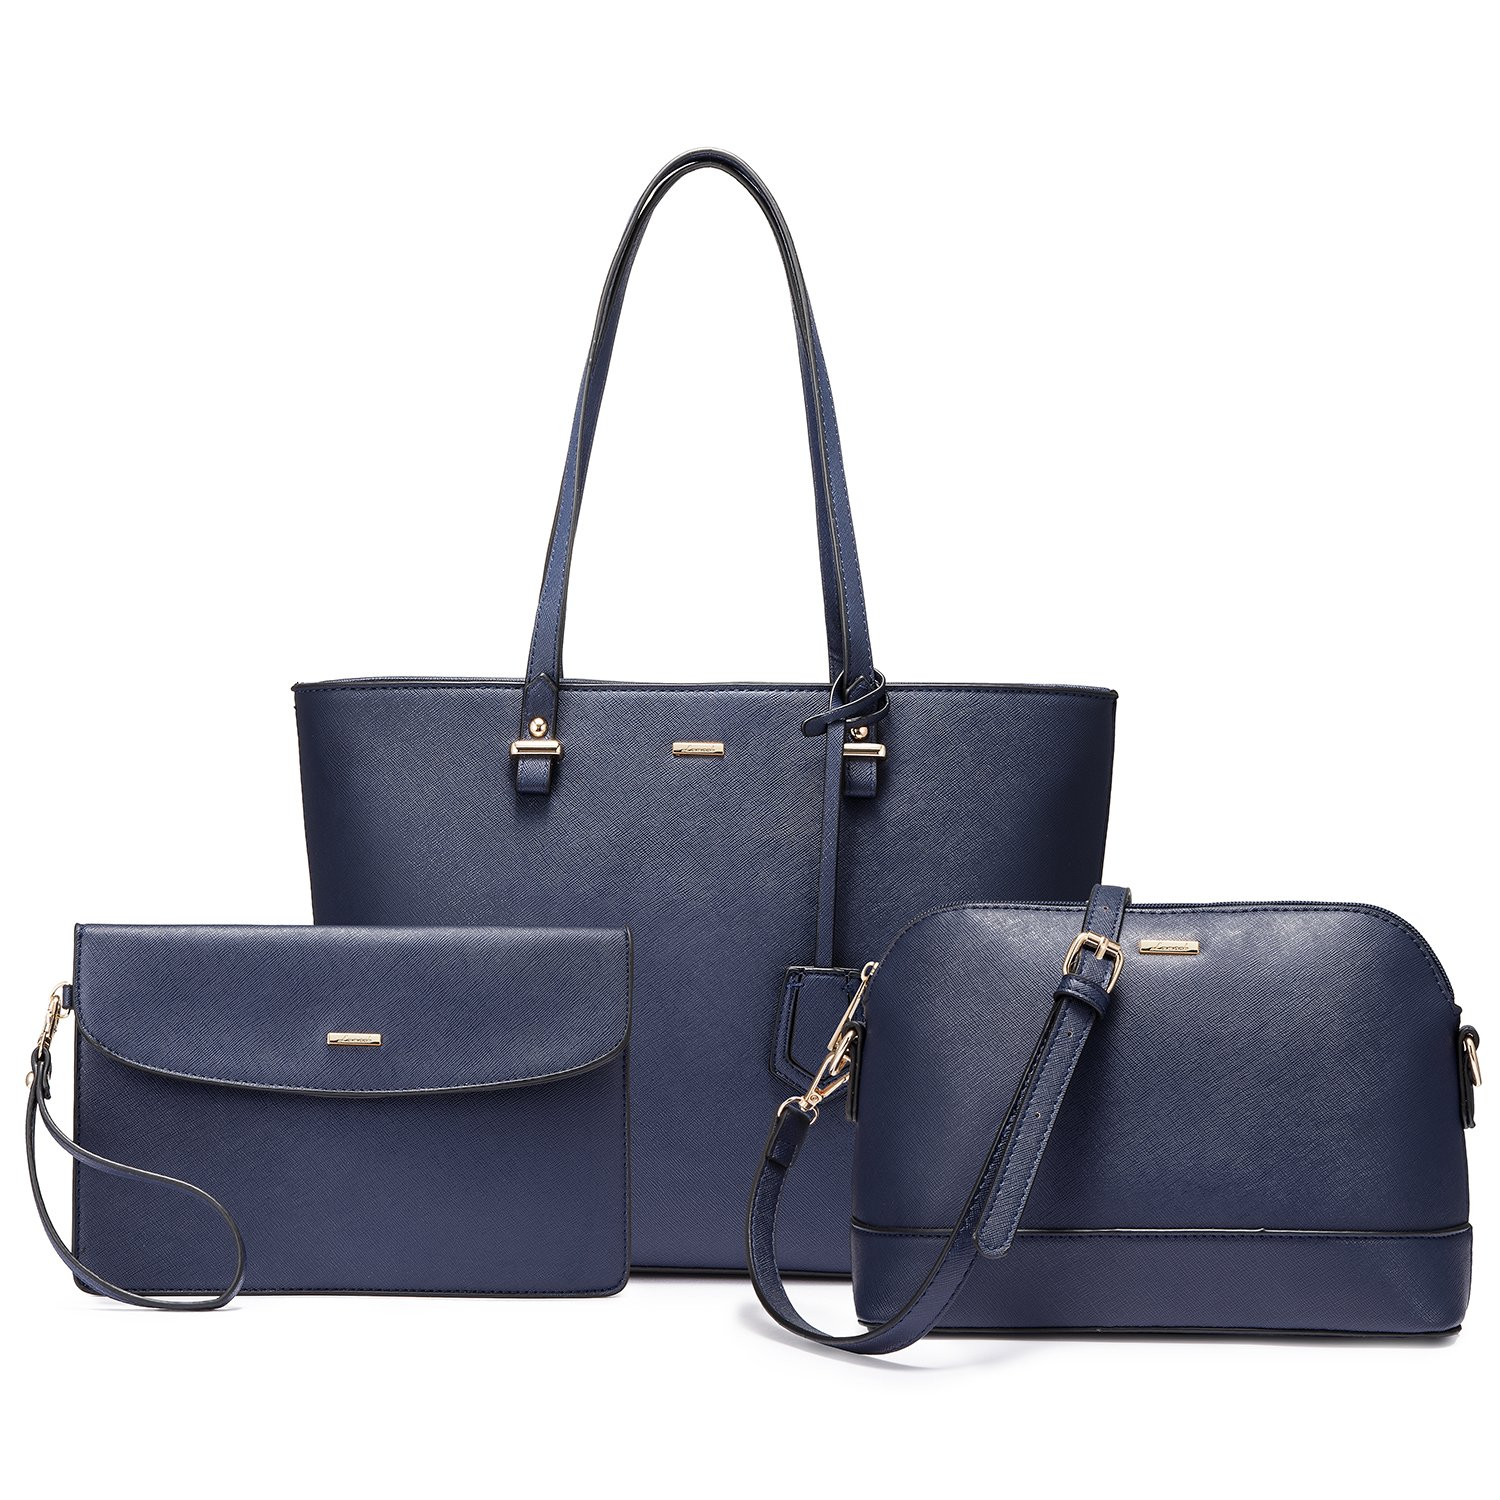 Handbags for Women Shoulder Bags Tote Satchel Hobo 3pcs Purse Set Navy